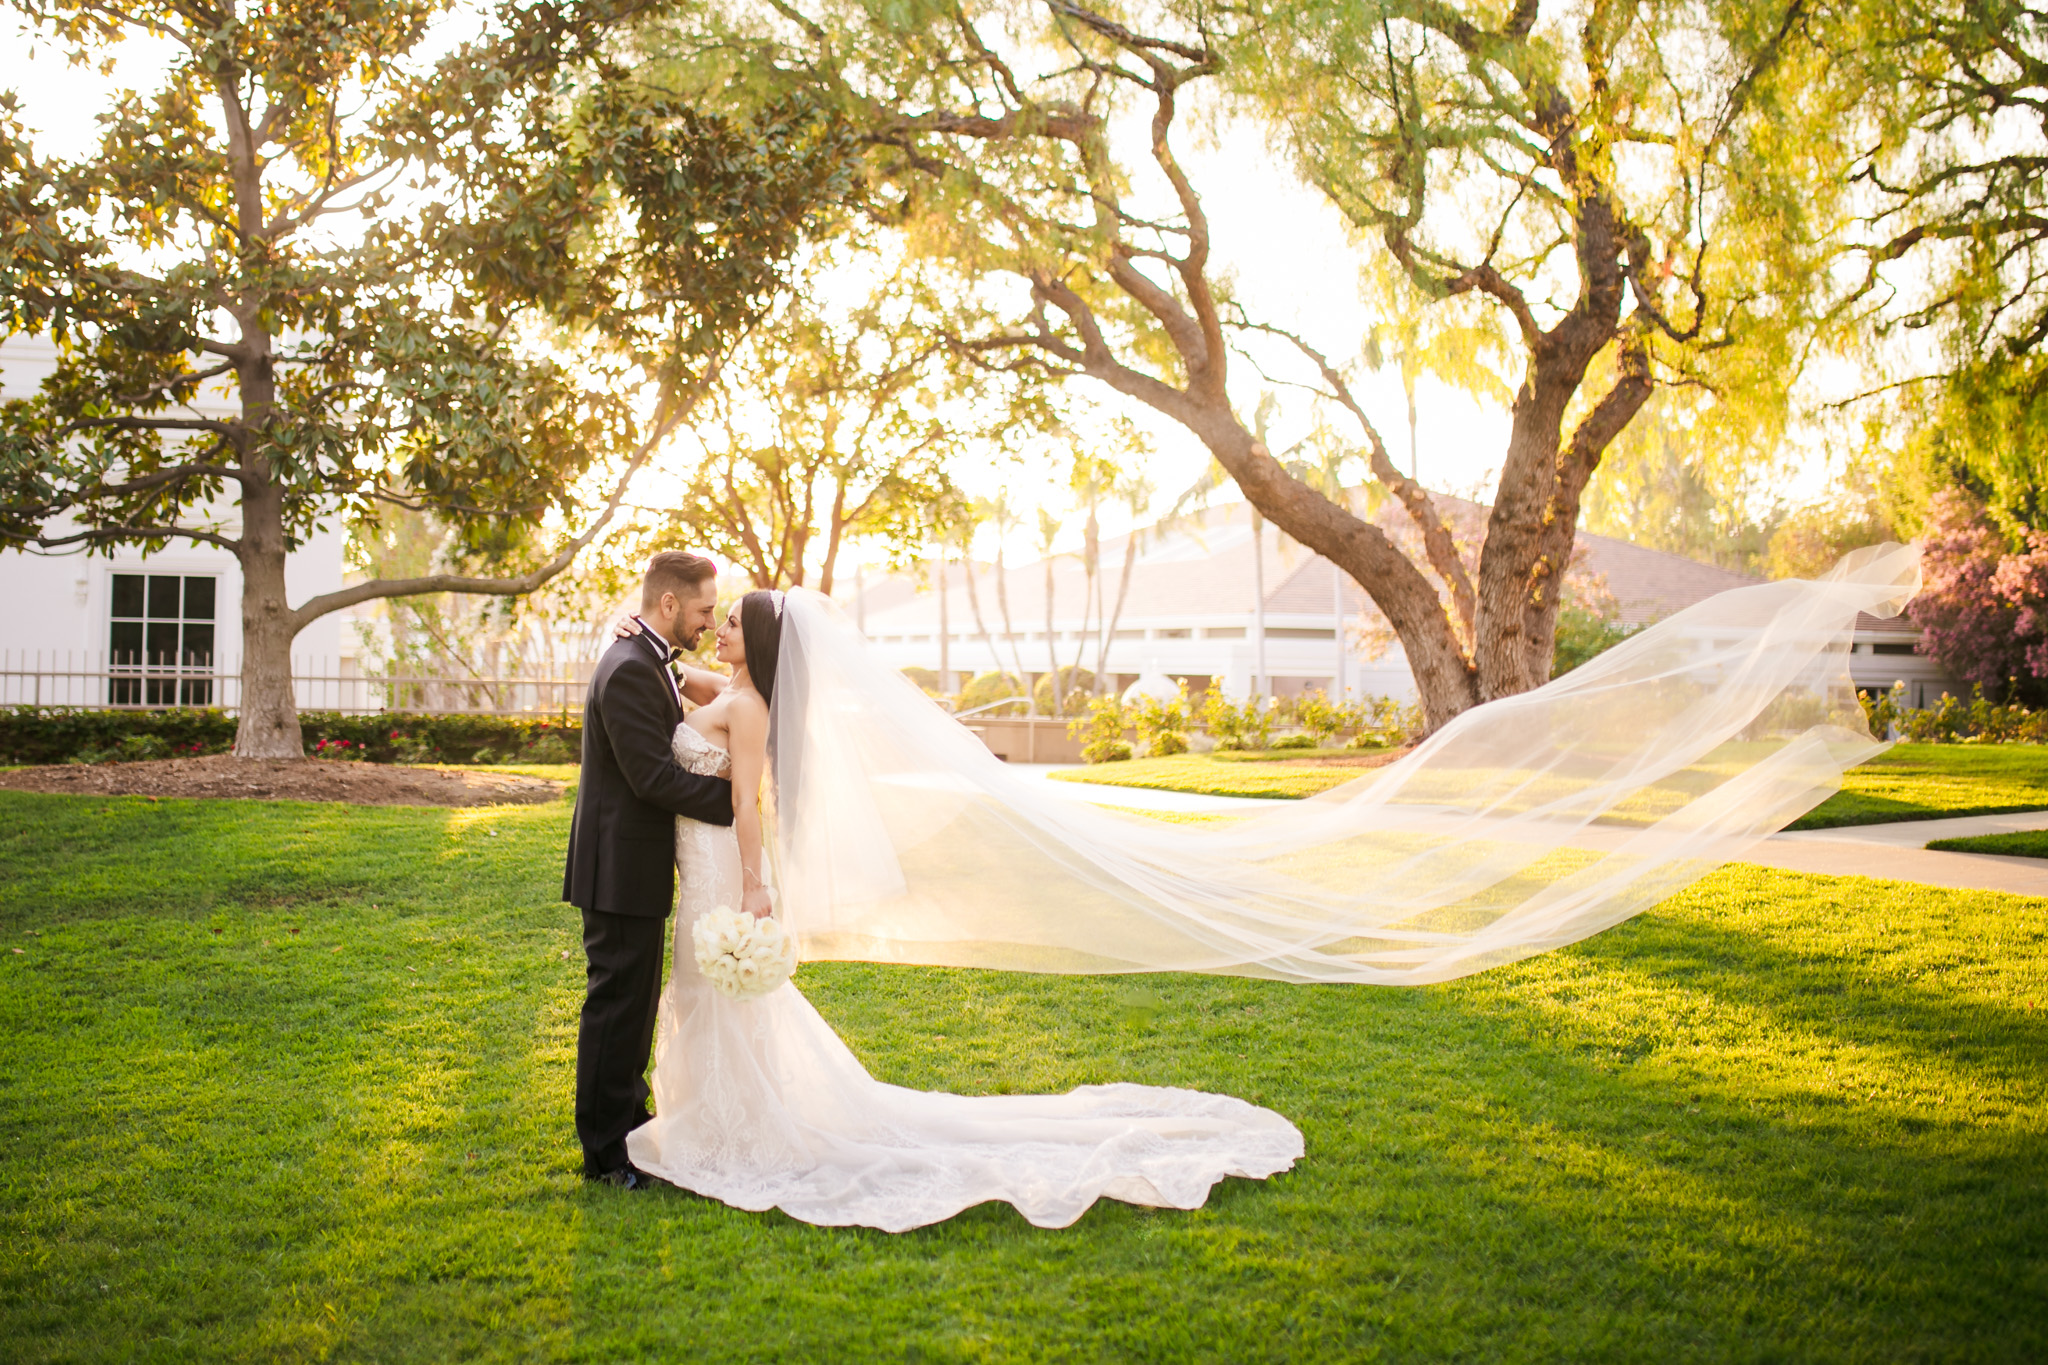 10 Richard Nixon Library Yorba Linda Wedding Photography